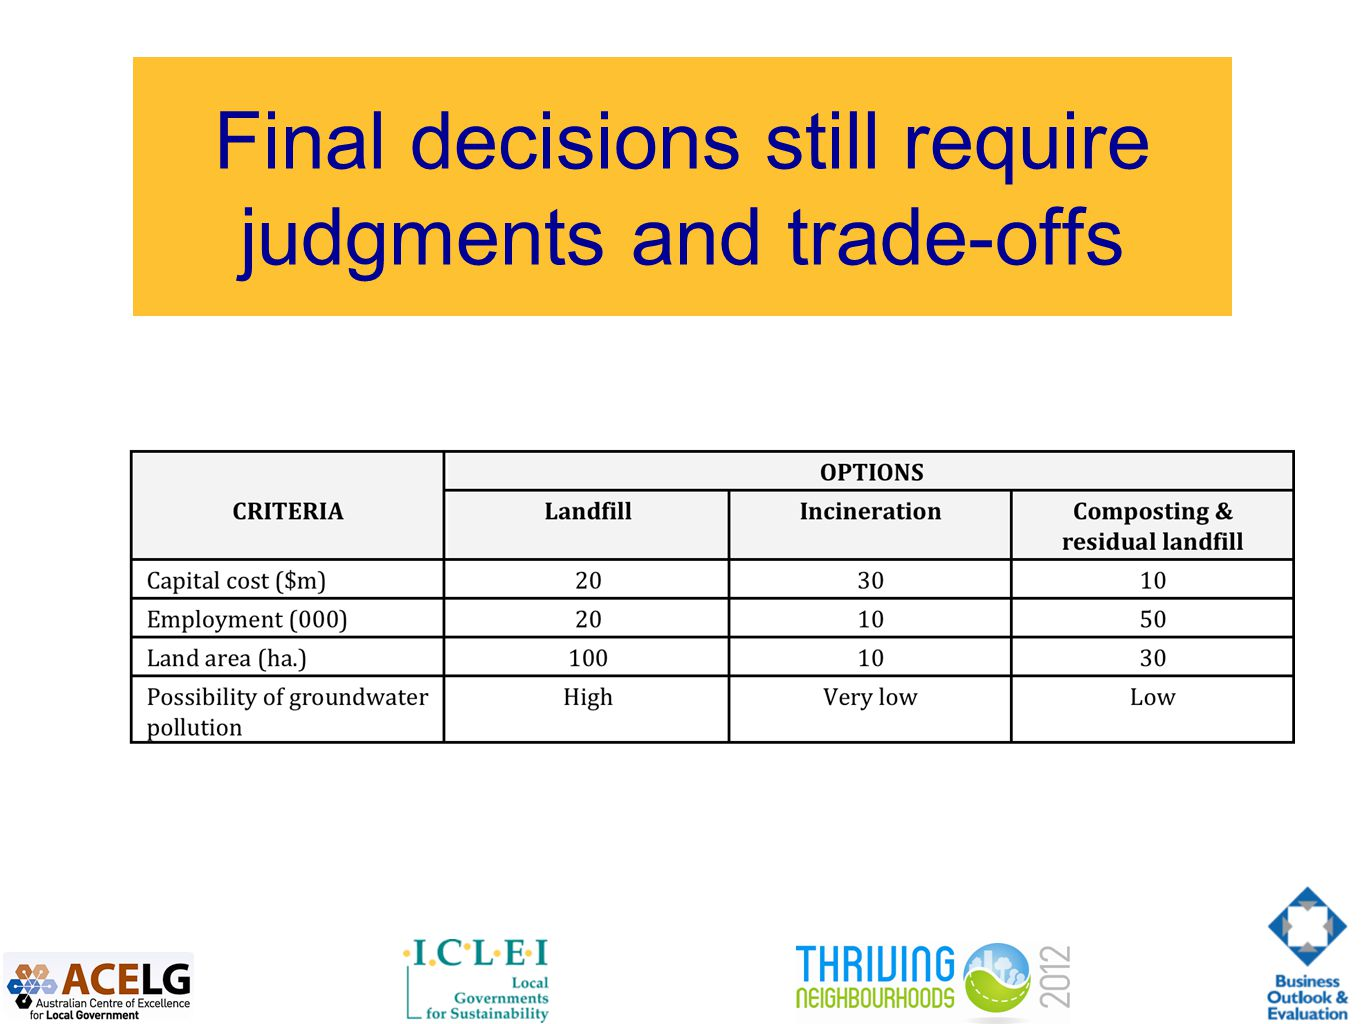 Final decisions still require judgments and trade-offs